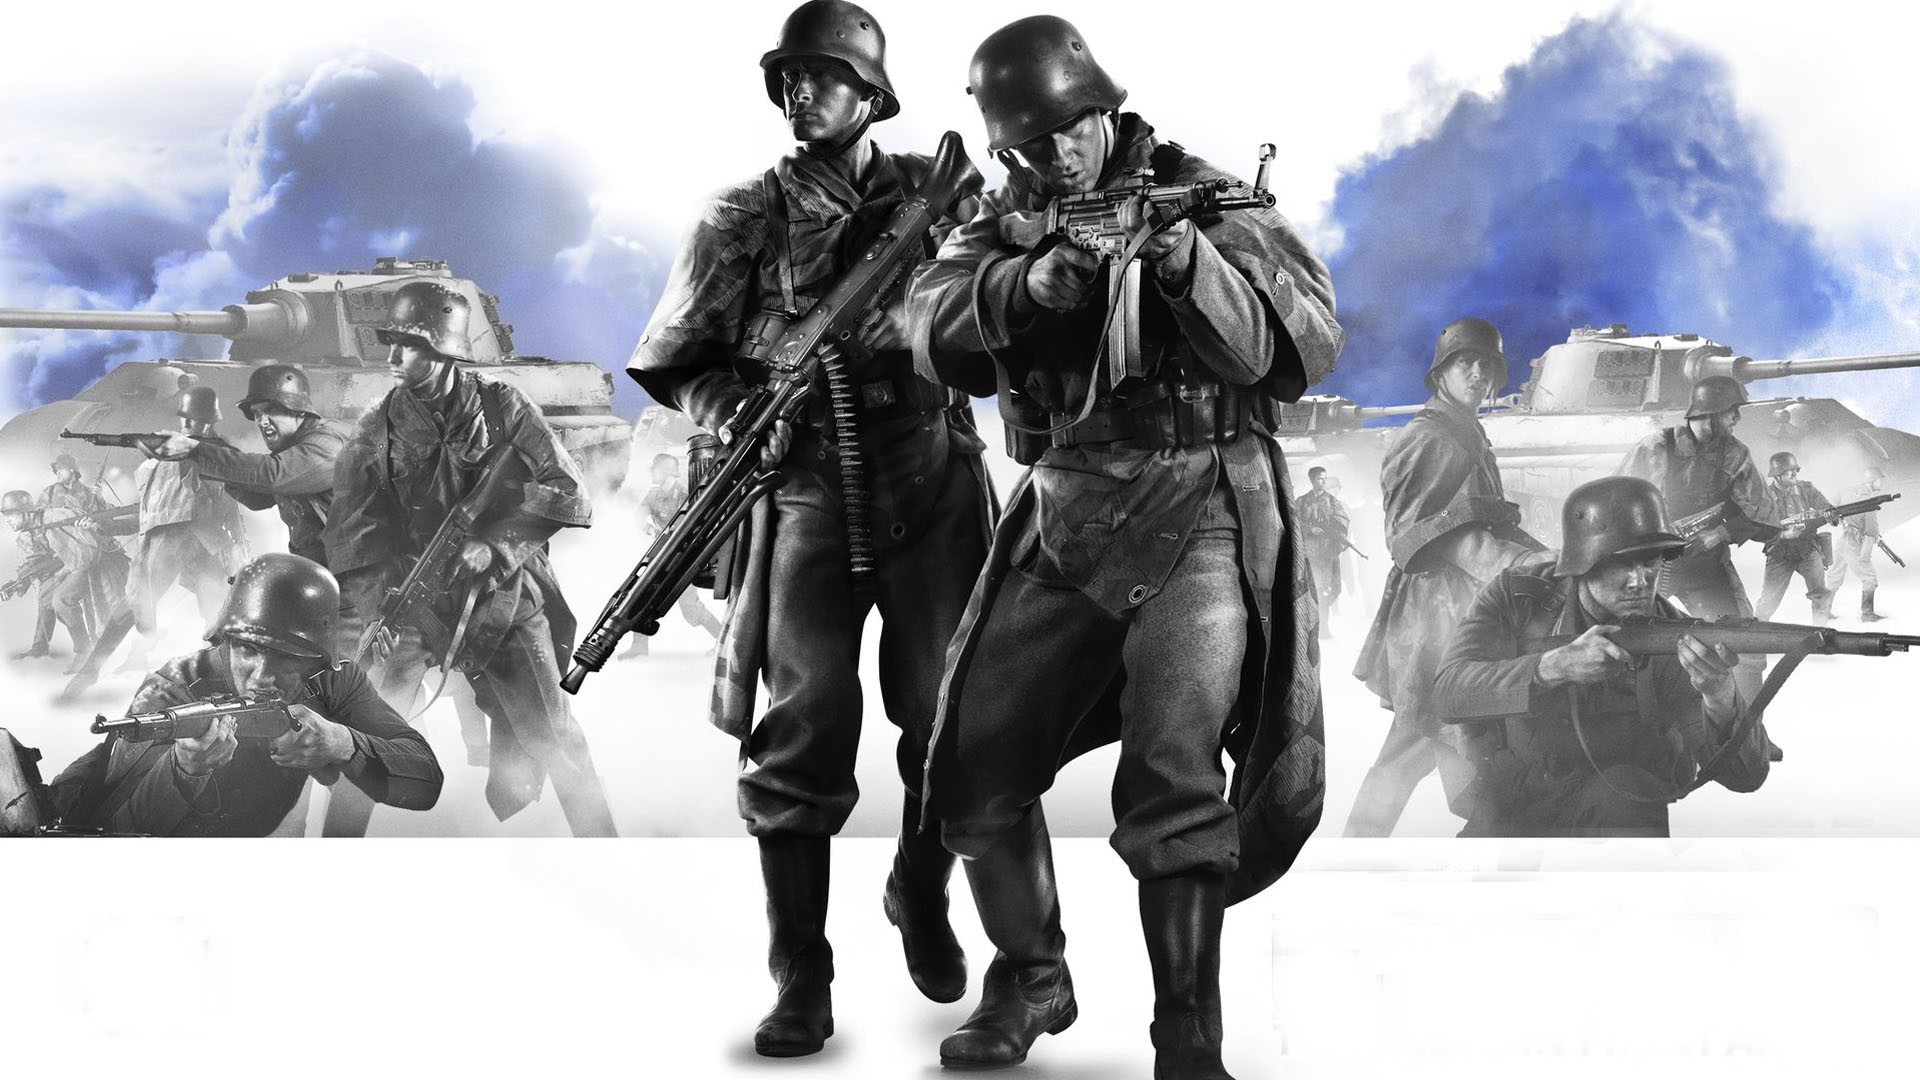 High Definition Company Heroes 2 Wallpaper High Definition